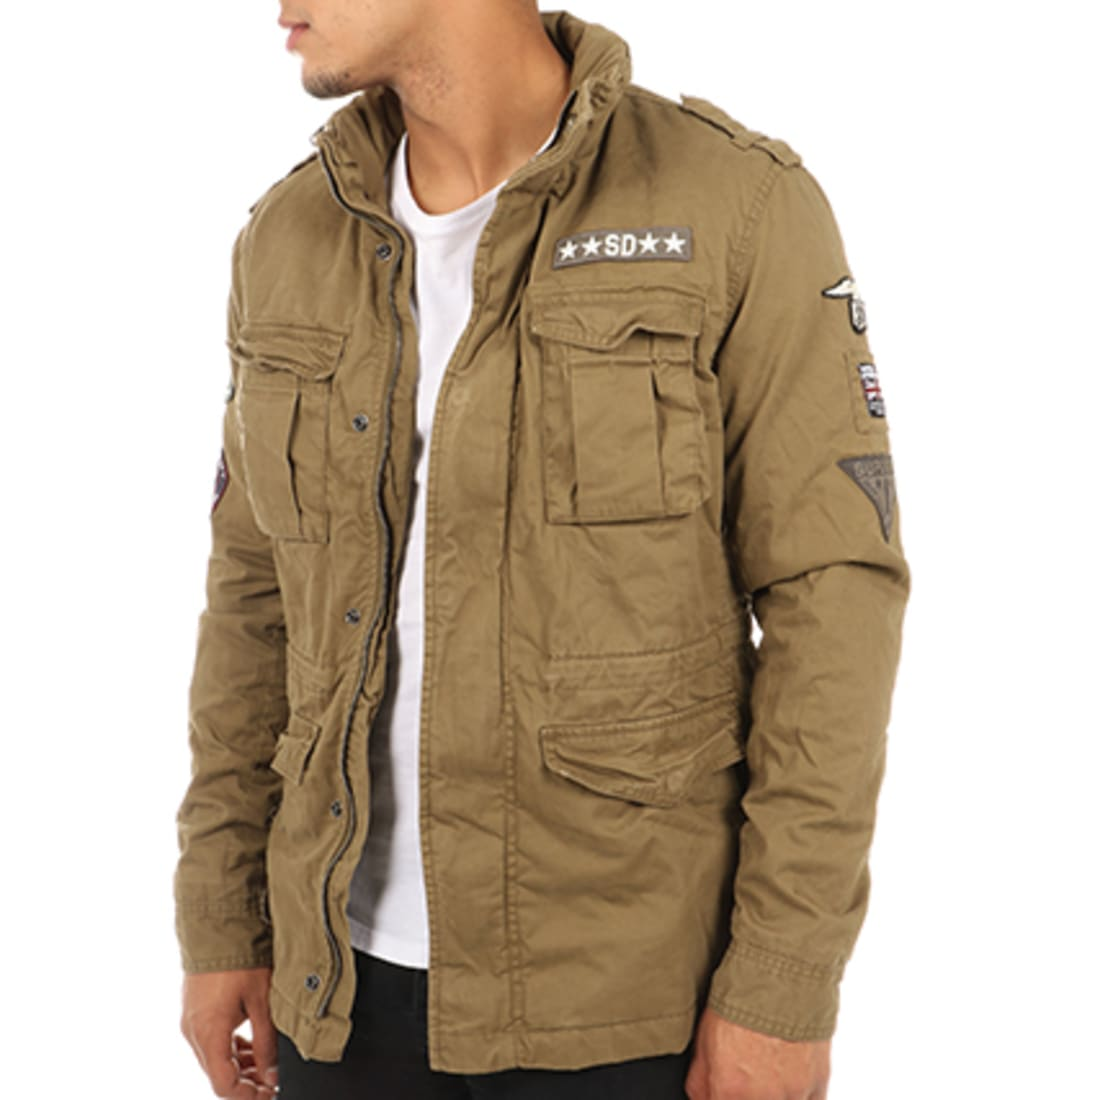 Superdry Veste Zippée Patchs Brodés Rookie Military Vert